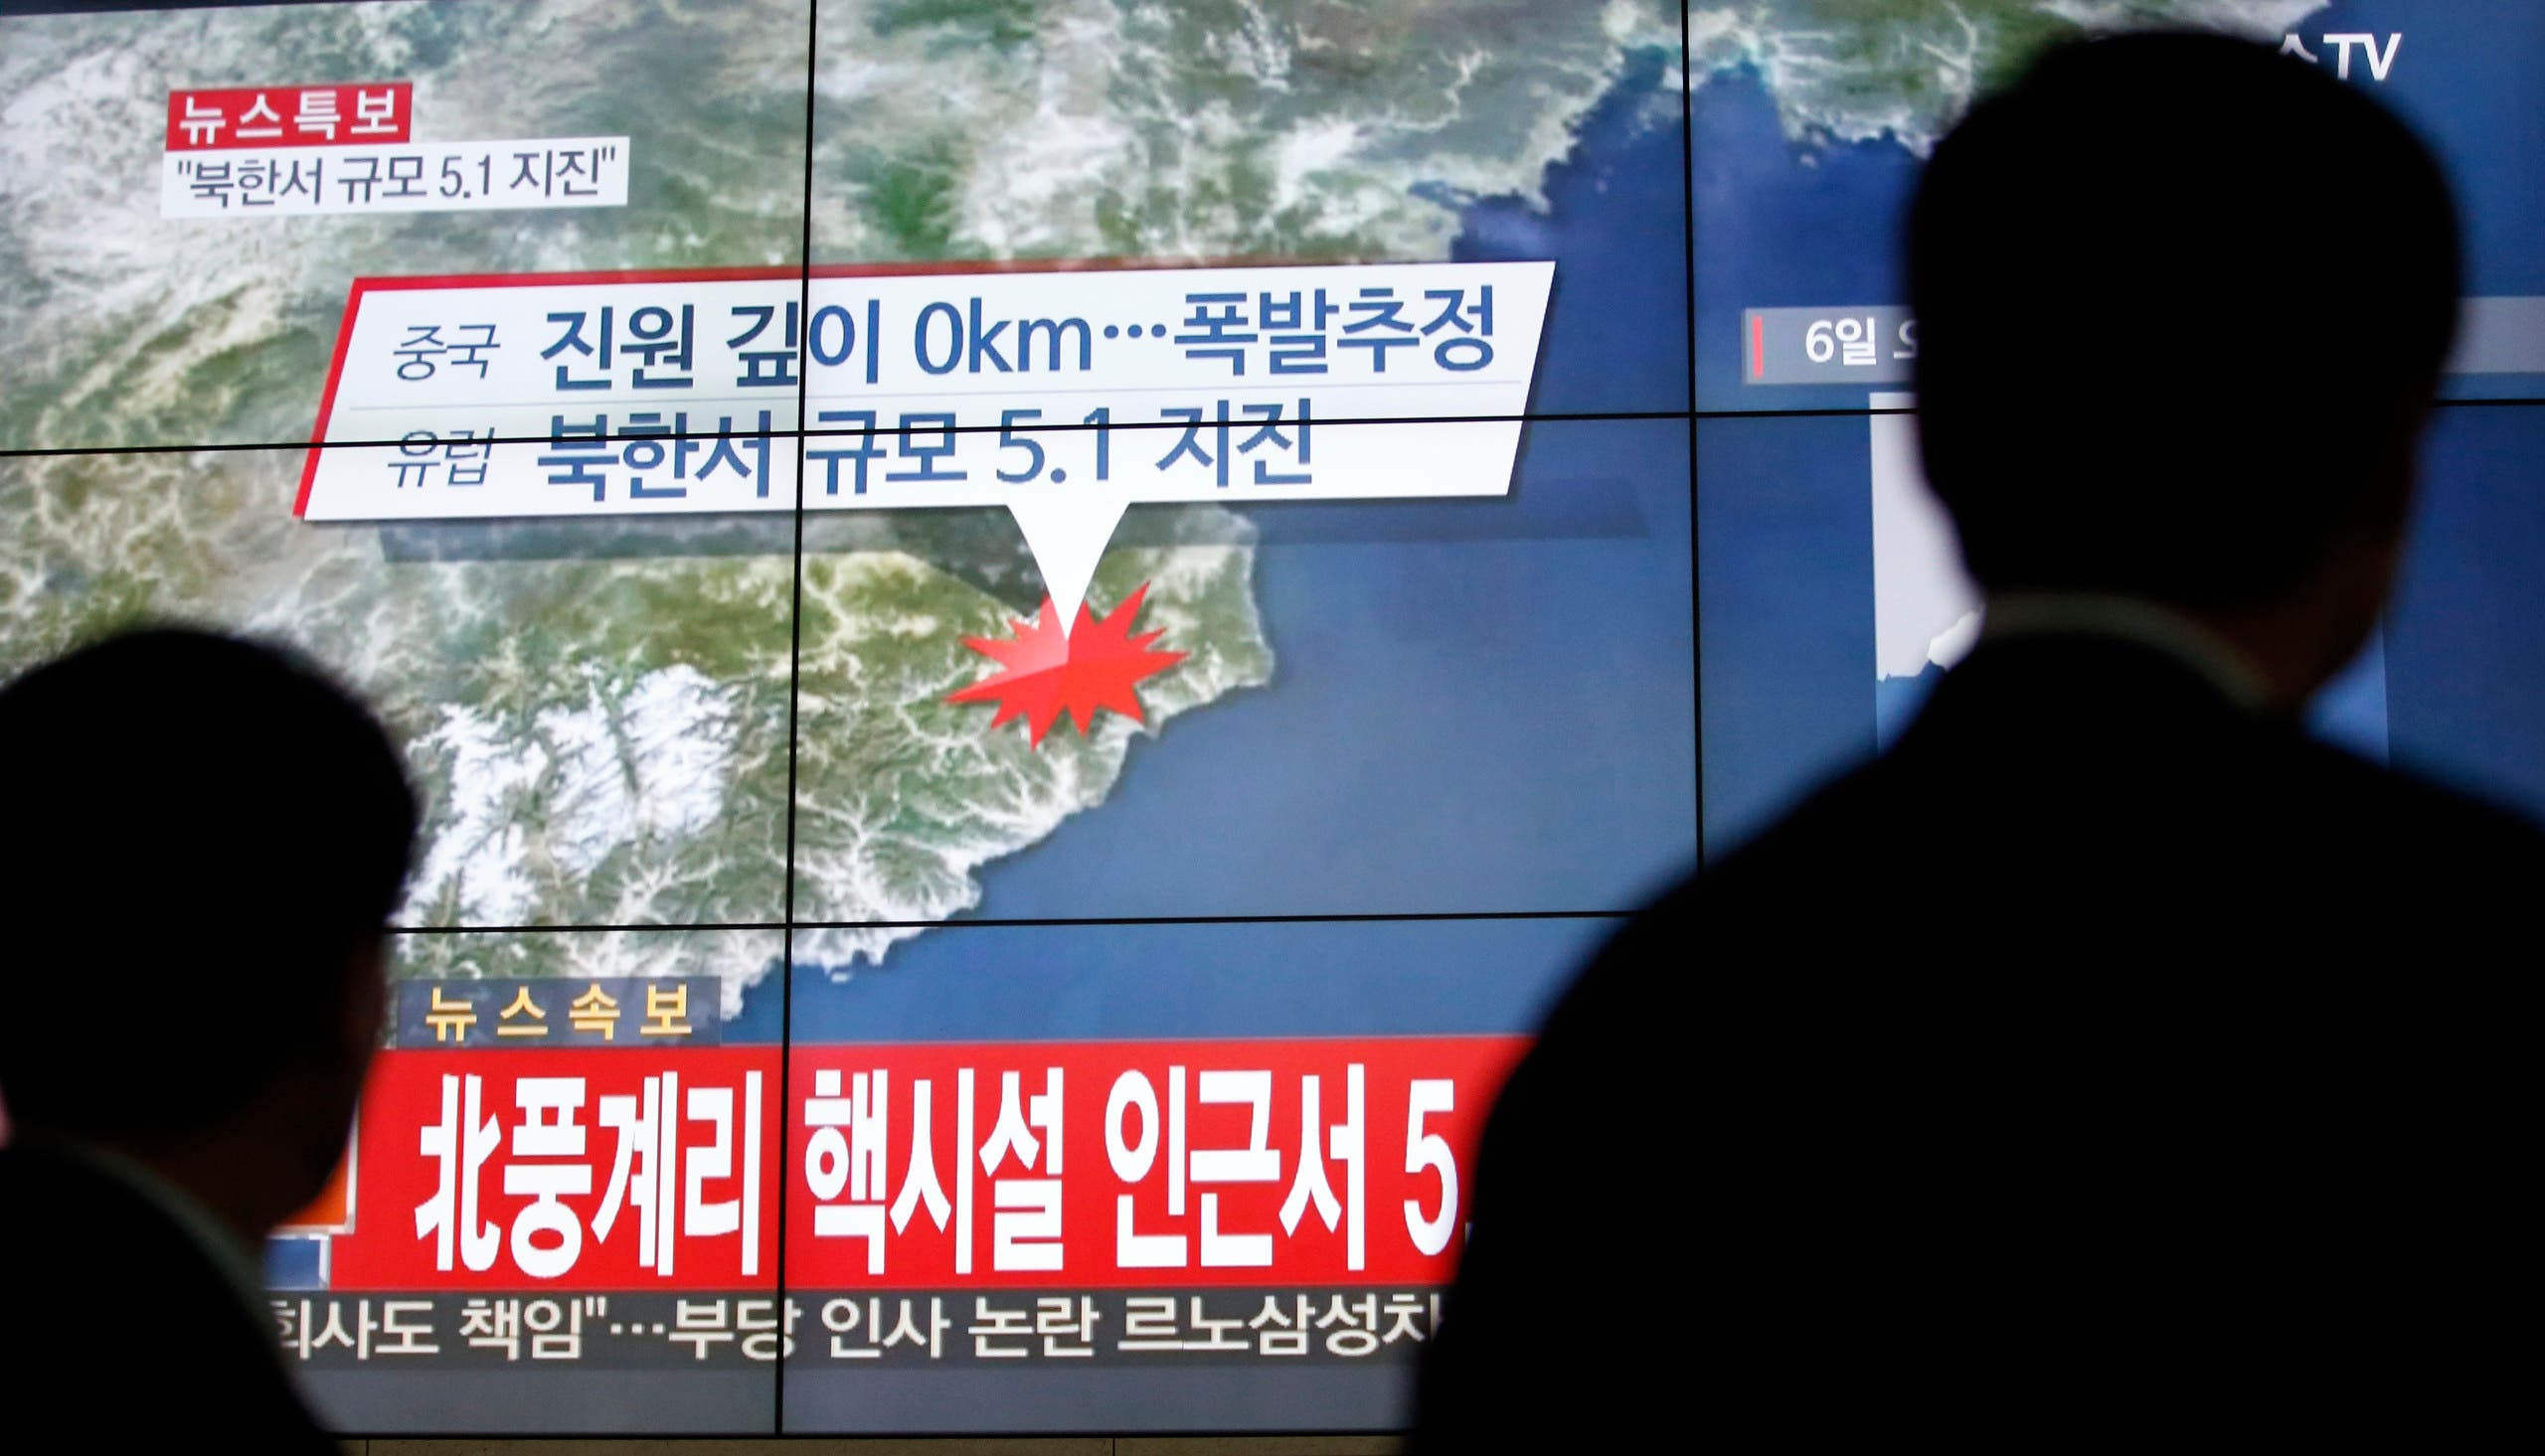 People walk by a screen showing the news reporting about an earthquake near North Korea's nuclear facility, in Seoul, South Korea, Wednesday, Jan. 6, 2016. (AP)